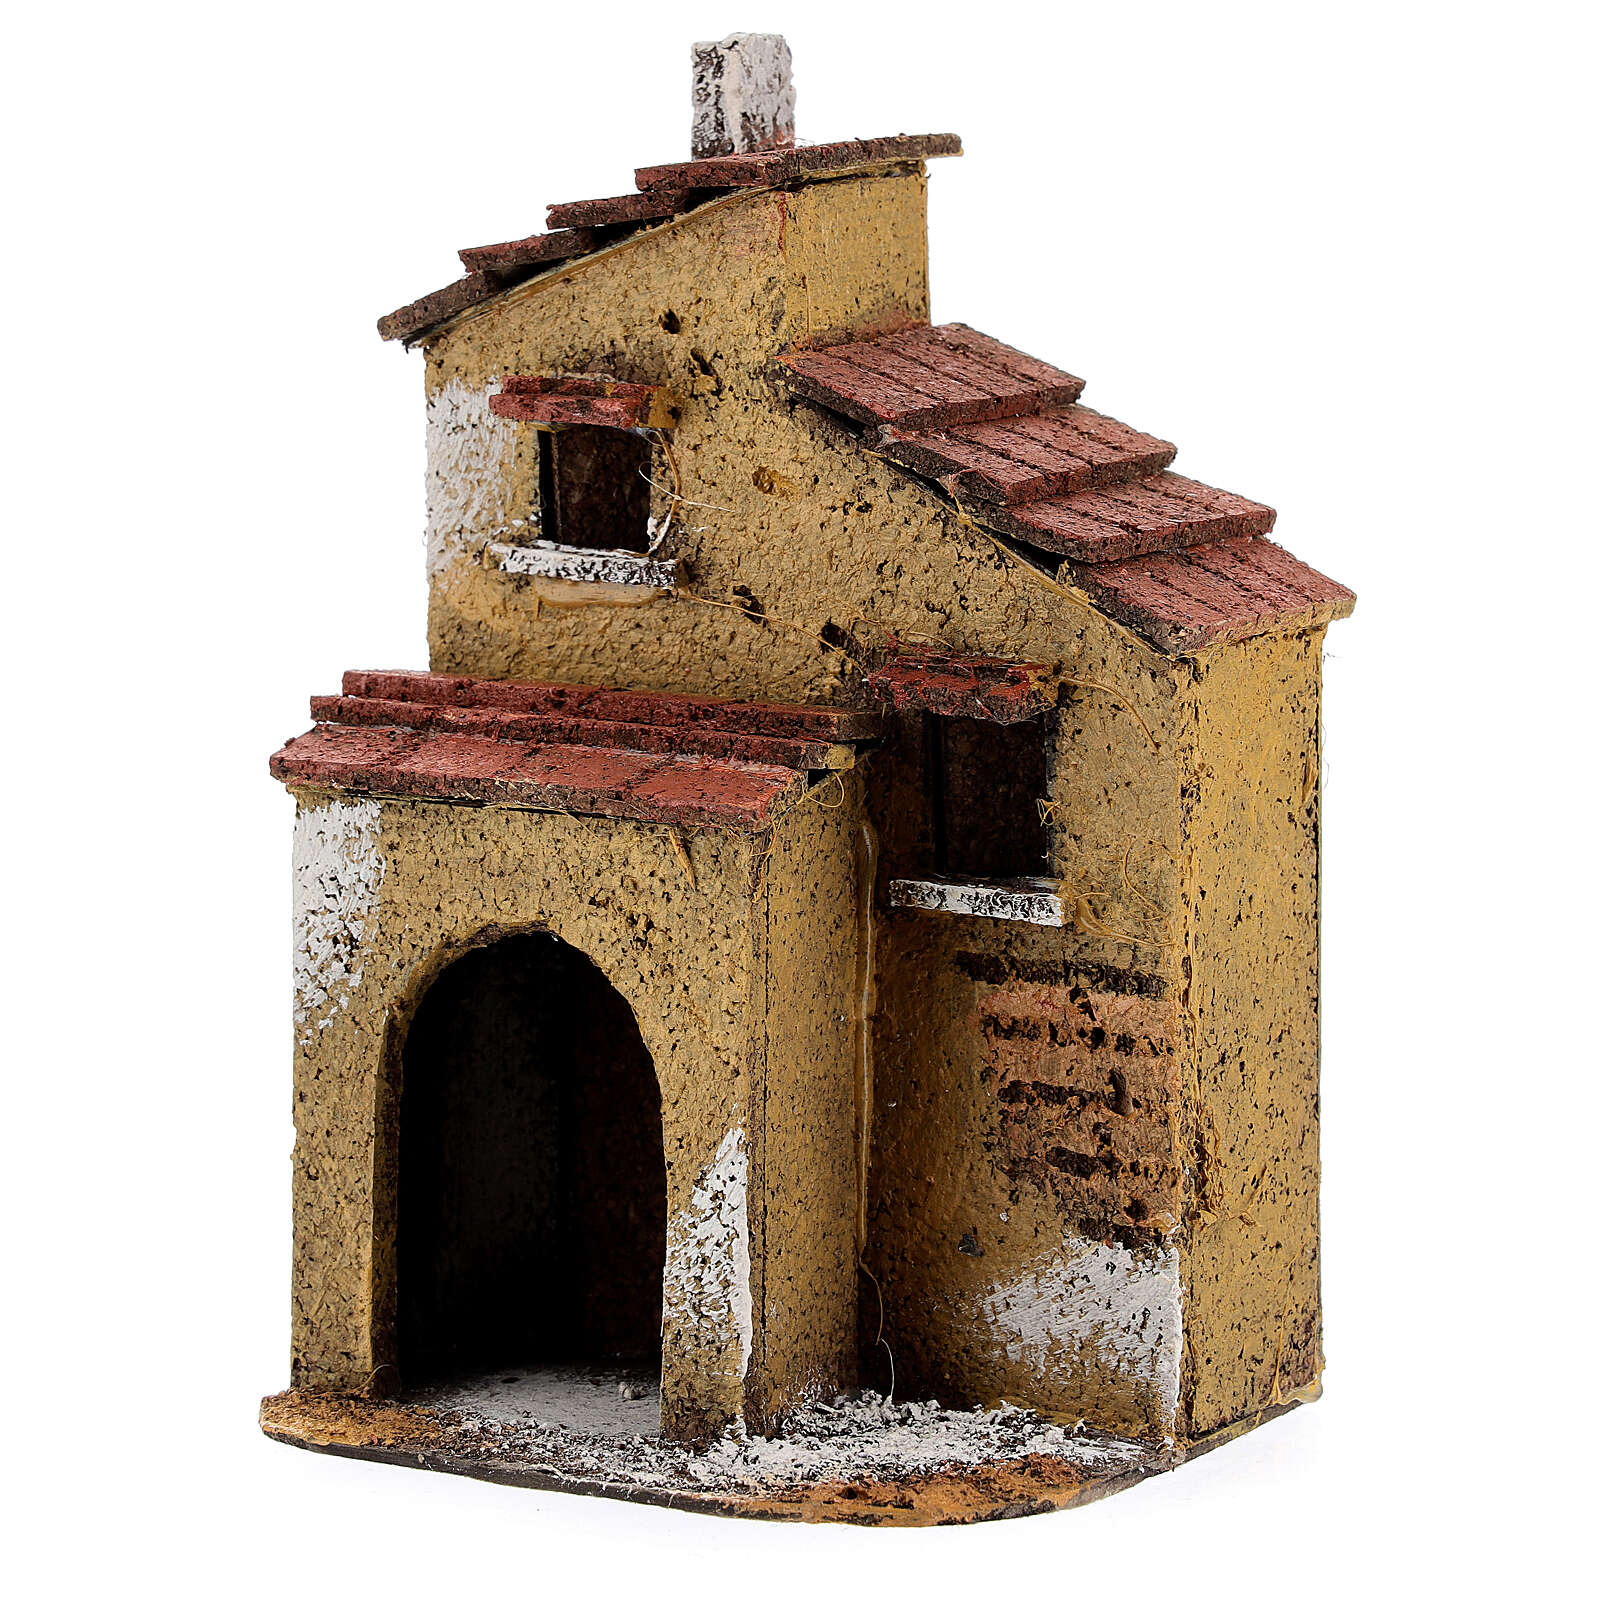 Cork cottage for Neapolitan crib 15x10x10 cm for statues 4 cm 4